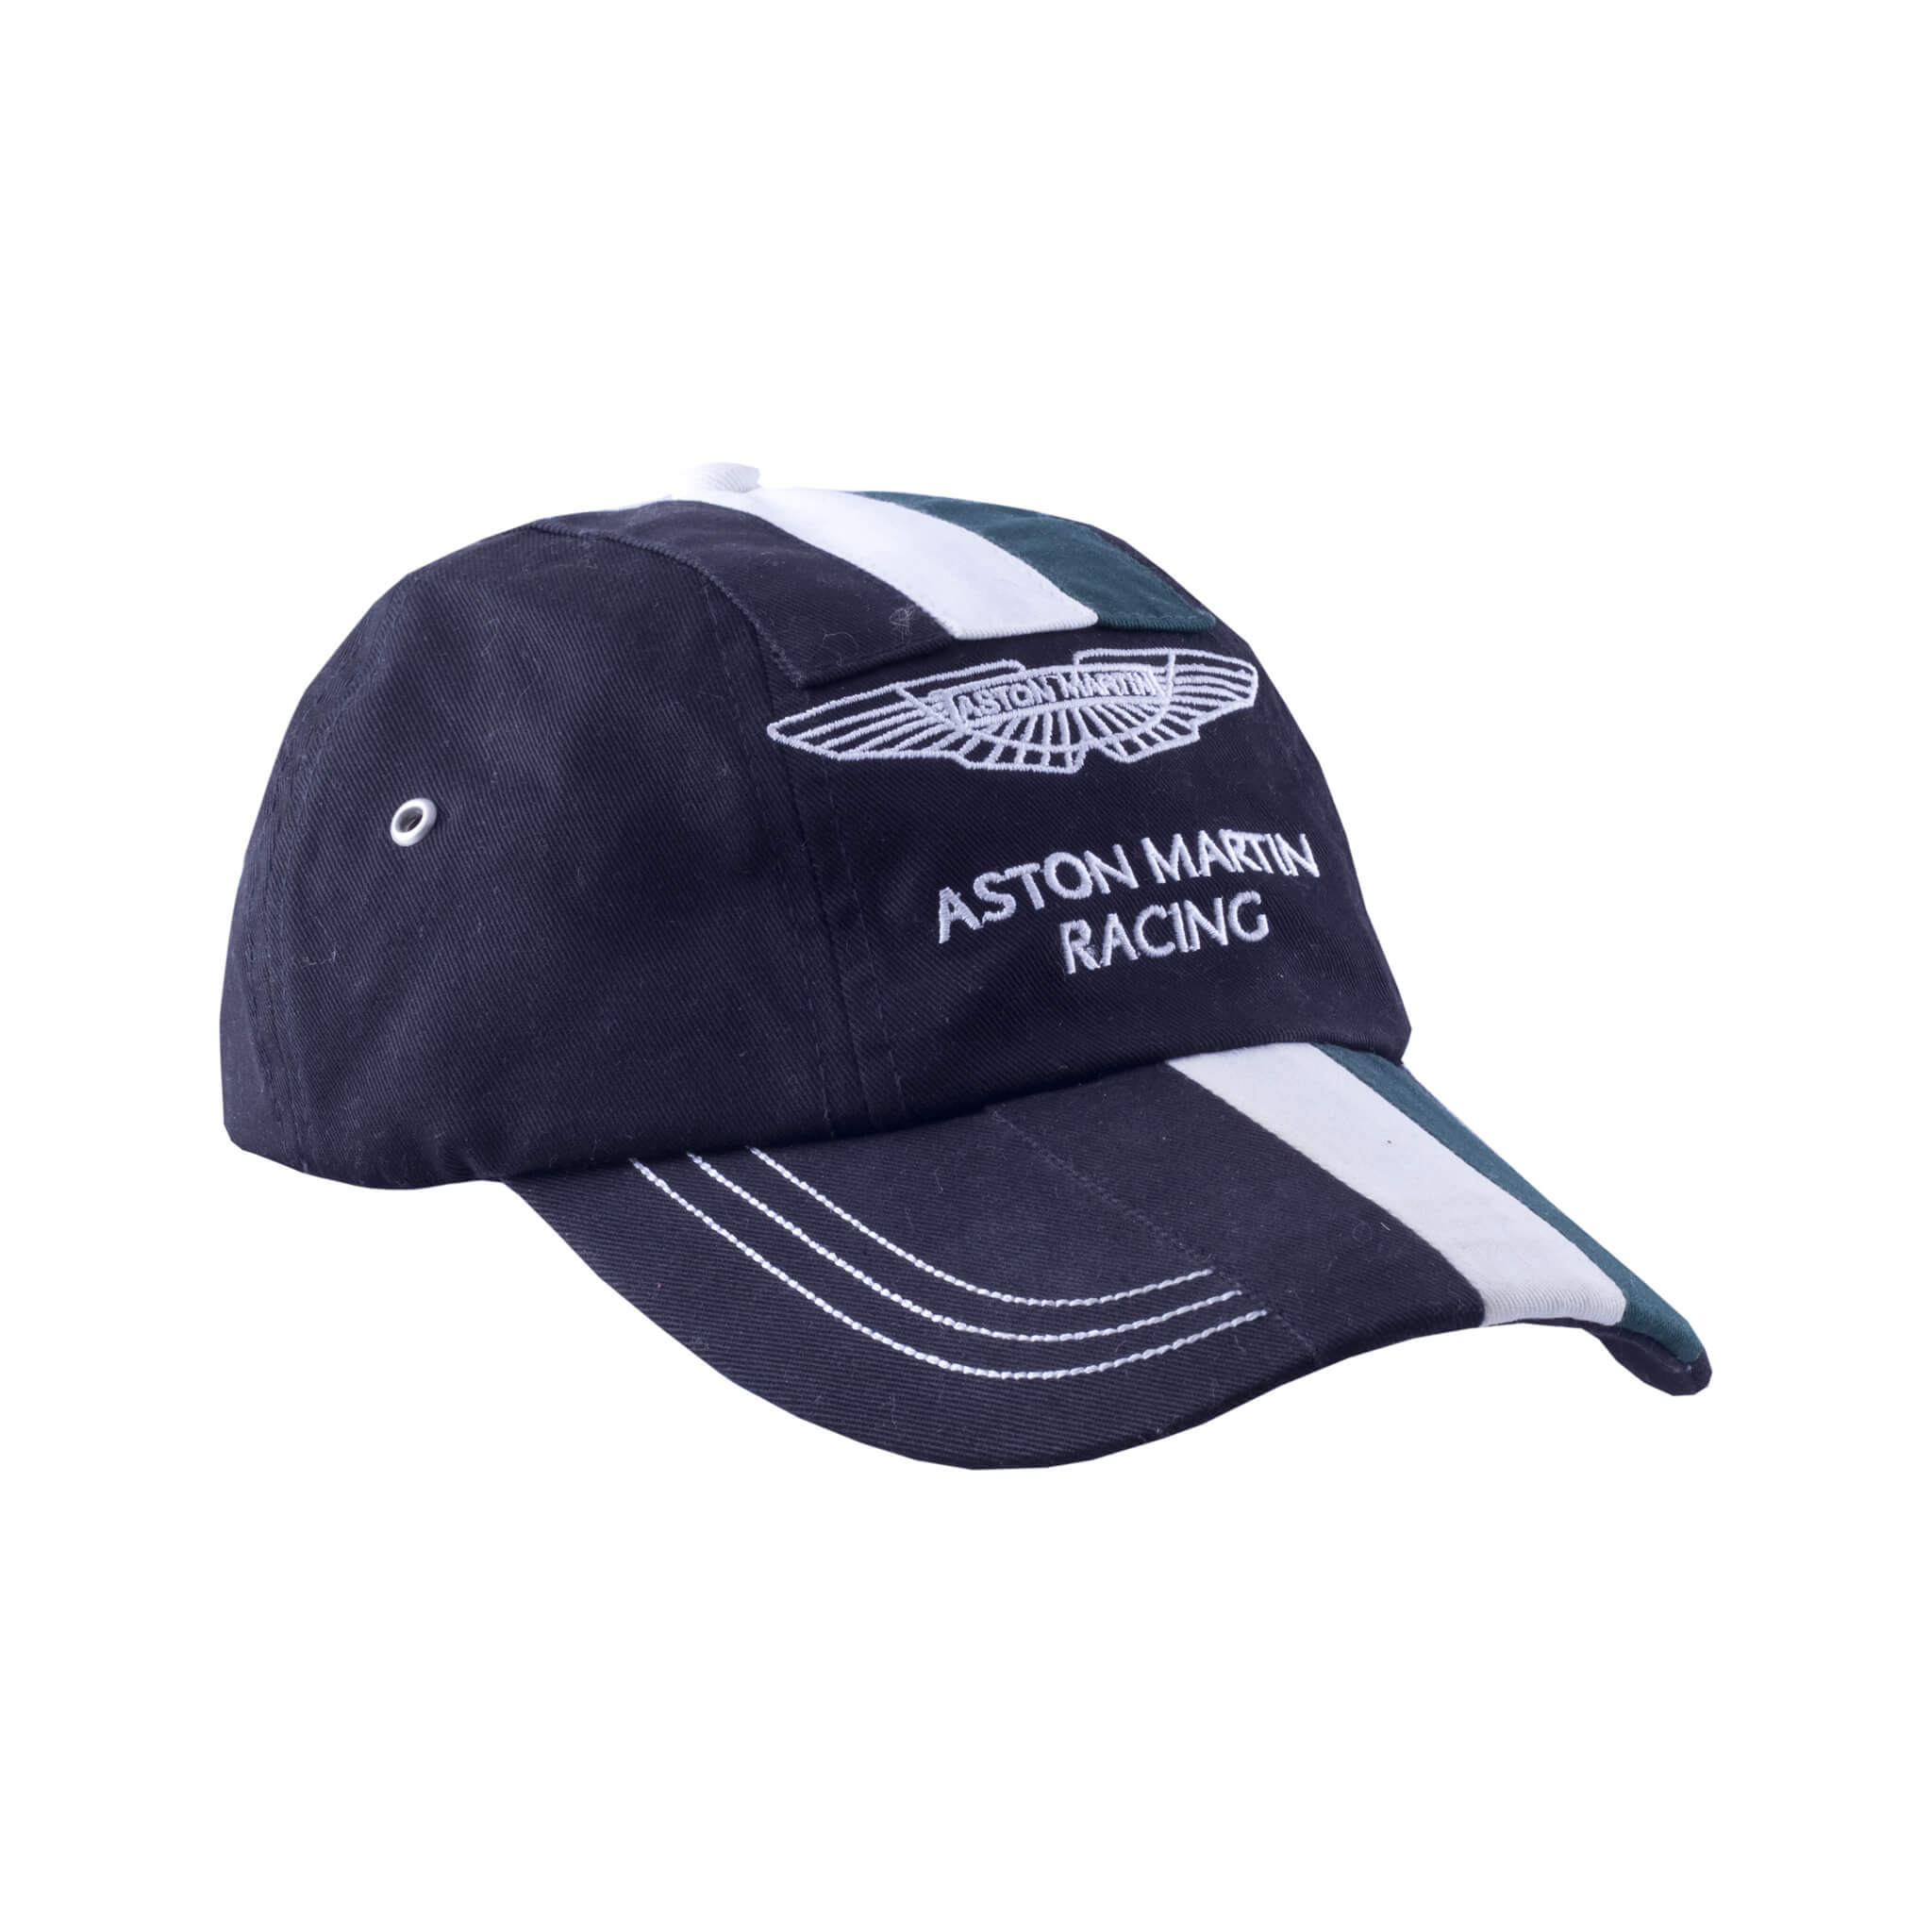 Official Aston Martin Racing Cap By Hackett Hat